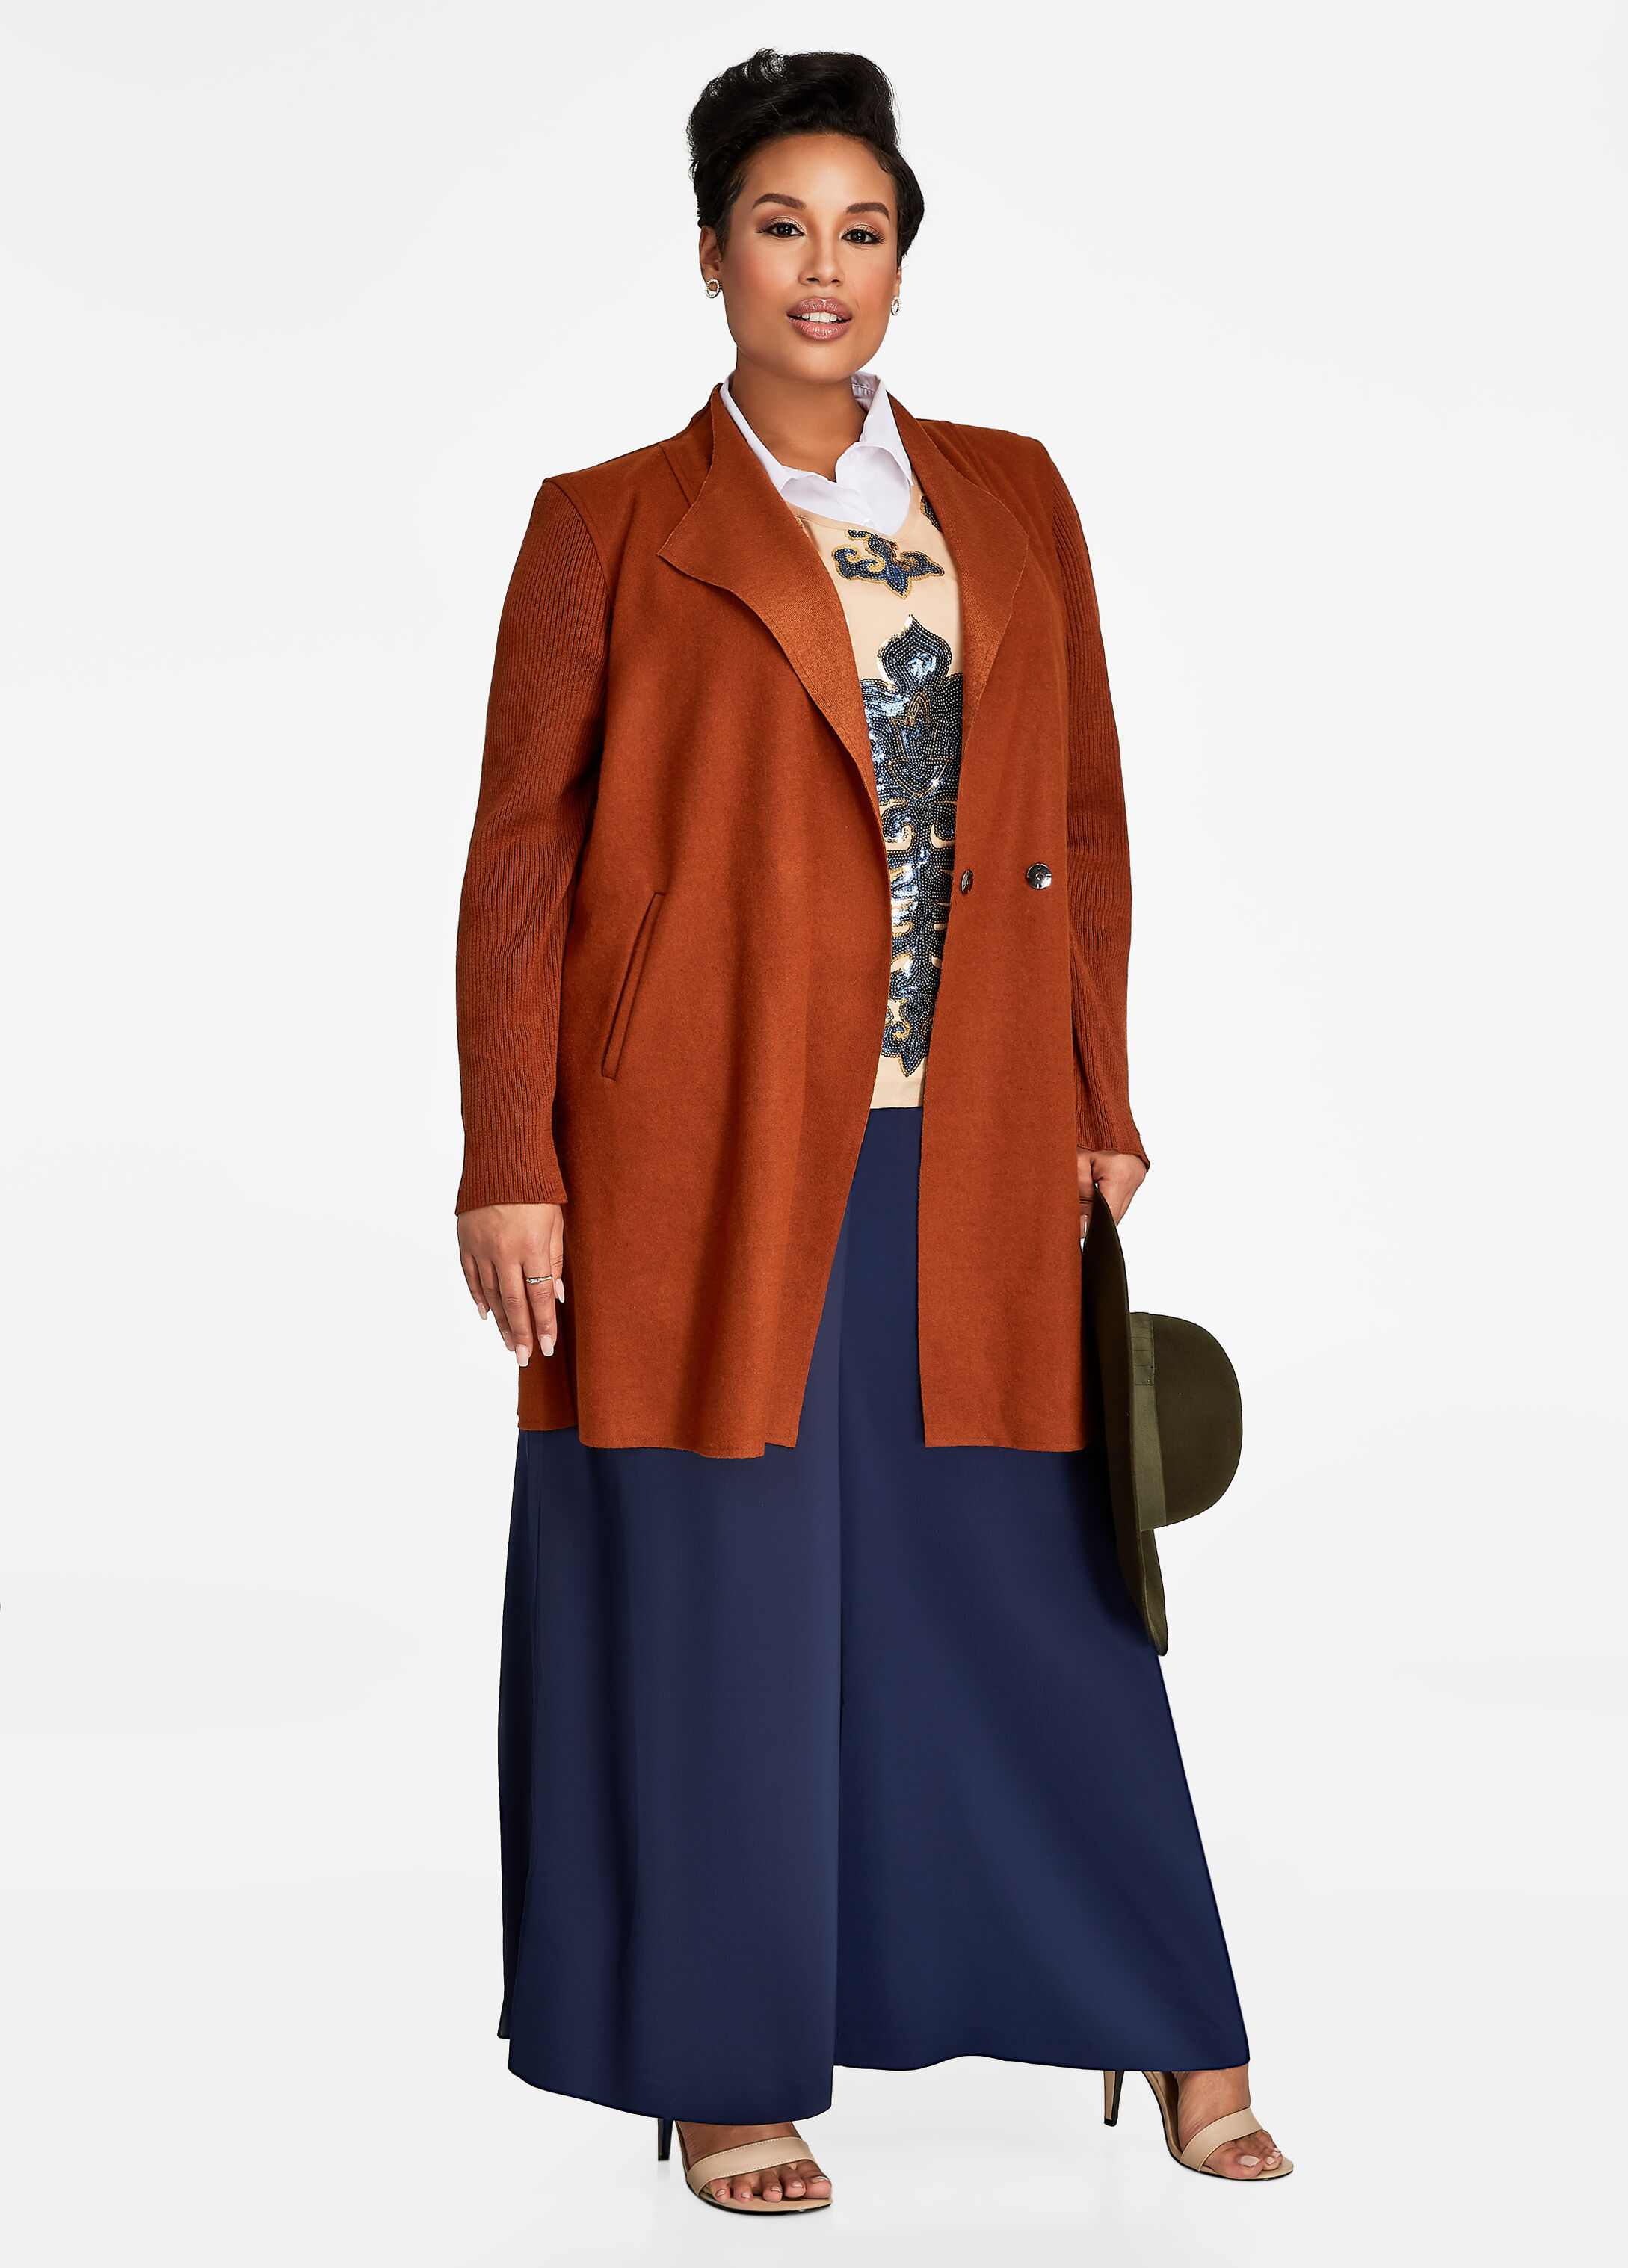 Plus Size Outfits - Coat with Sequin Top and Wide Leg Pants